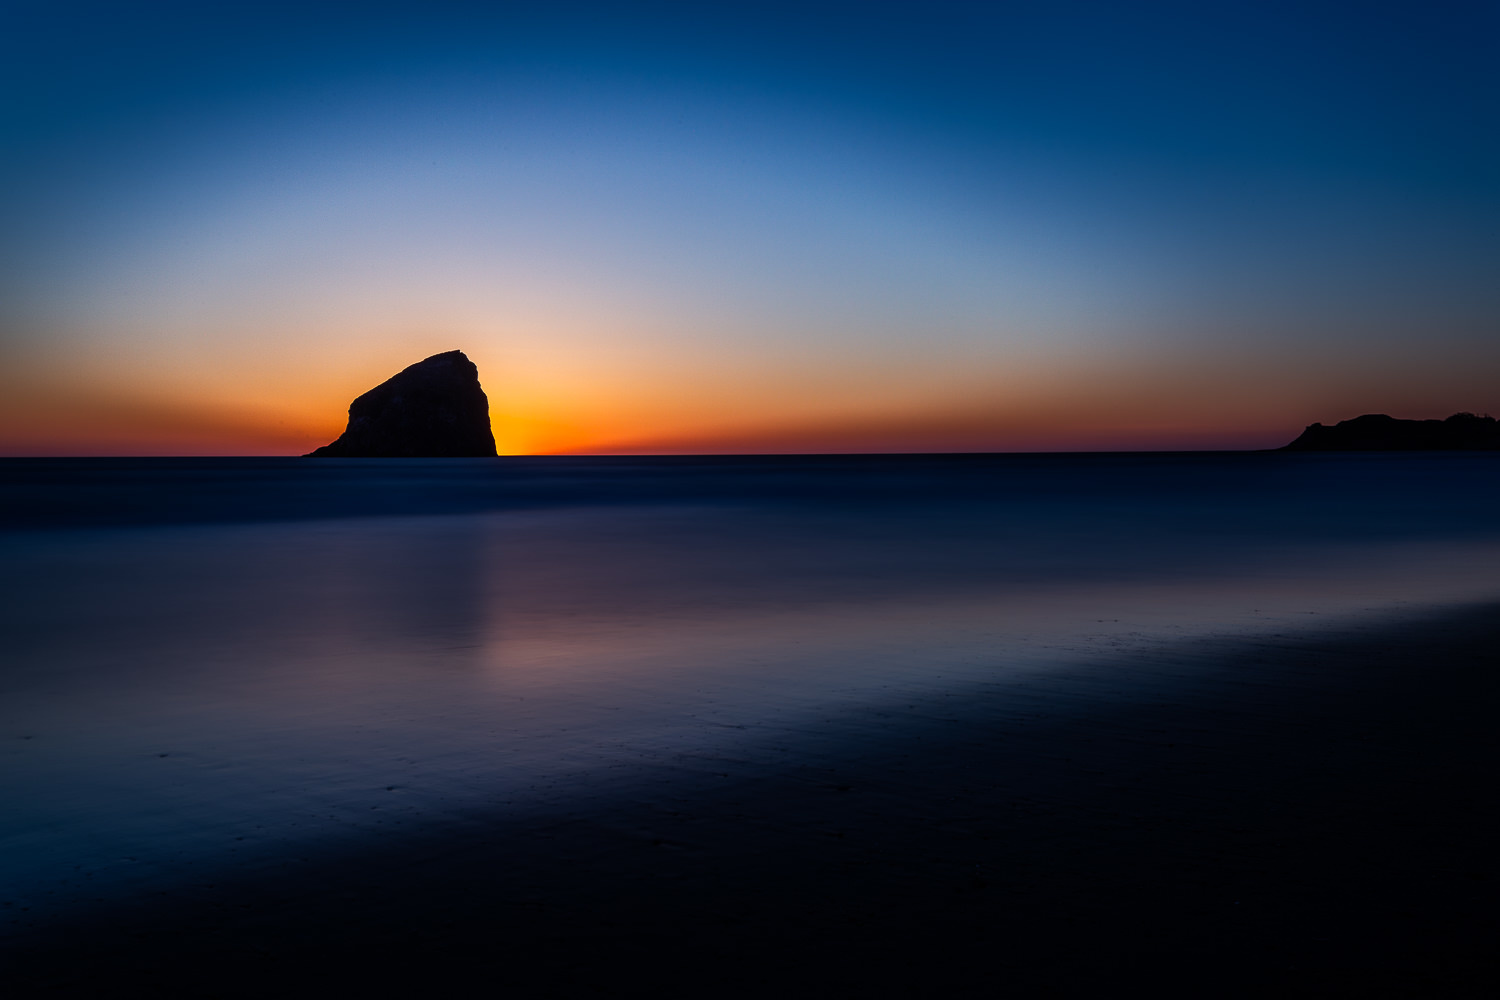 Cannon Beach at Sunset by Kendrix Thomas